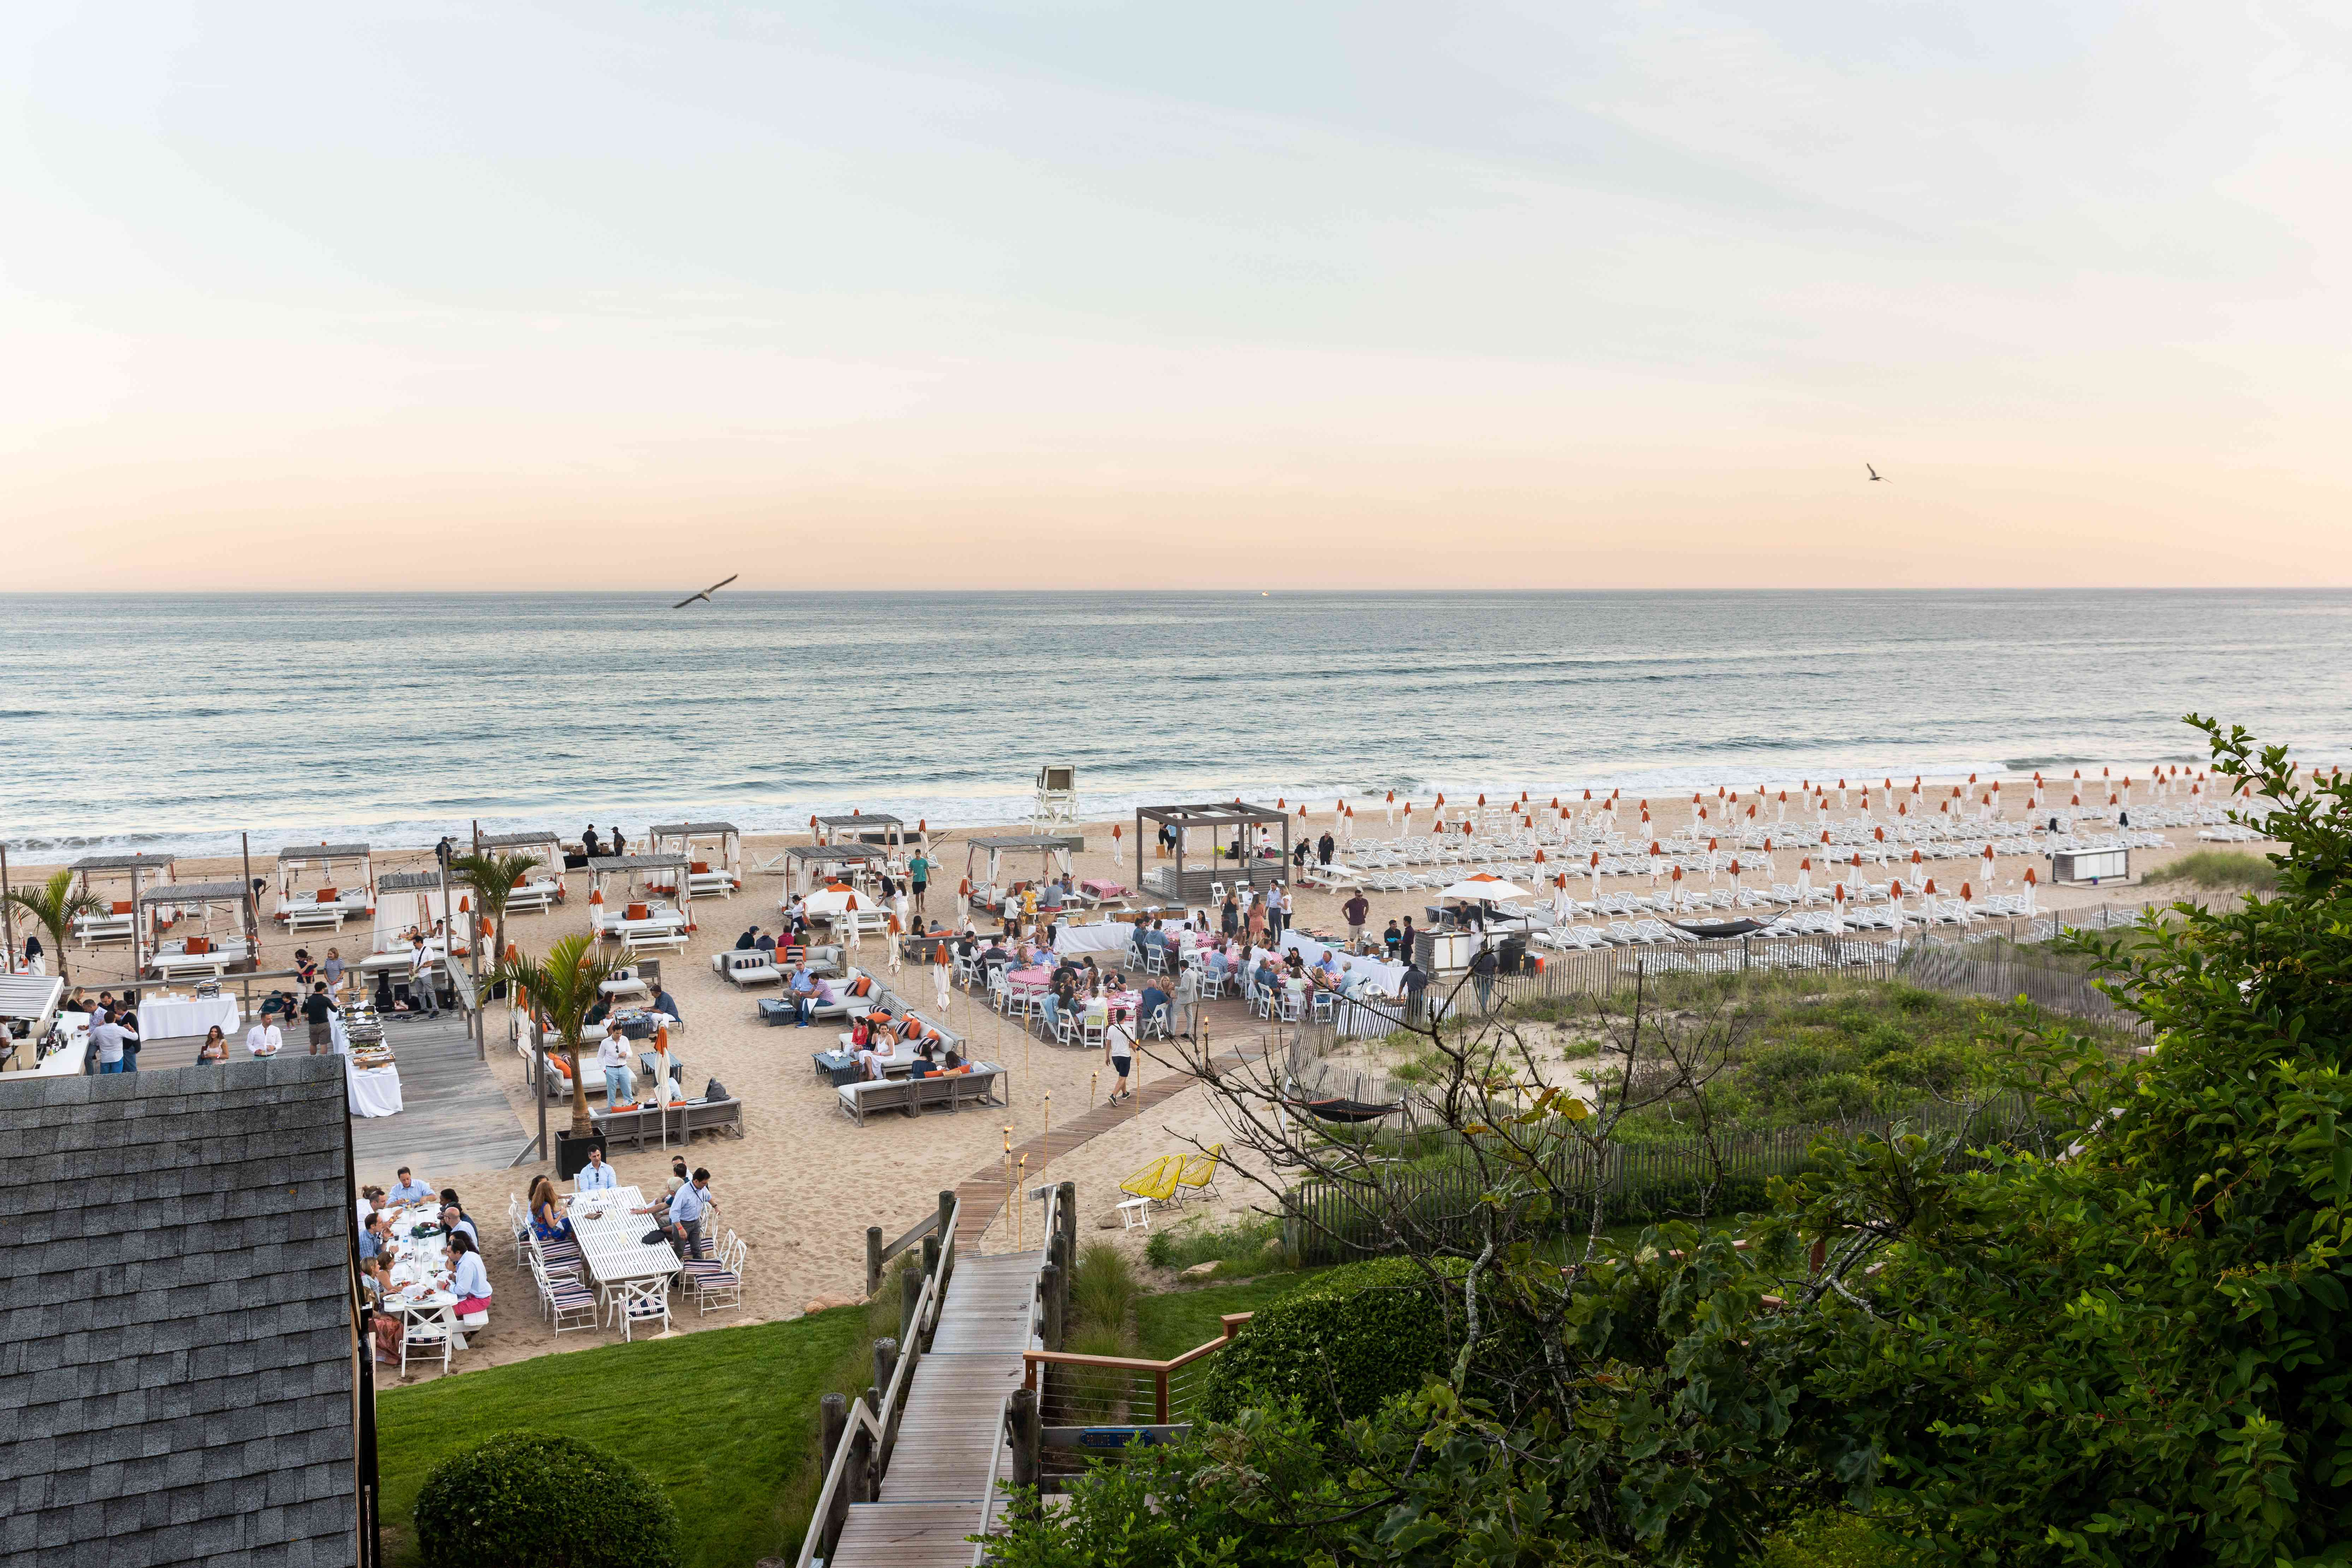 An overview of The Beach Club at Gurney's Montauk Resort & Seawater Spa